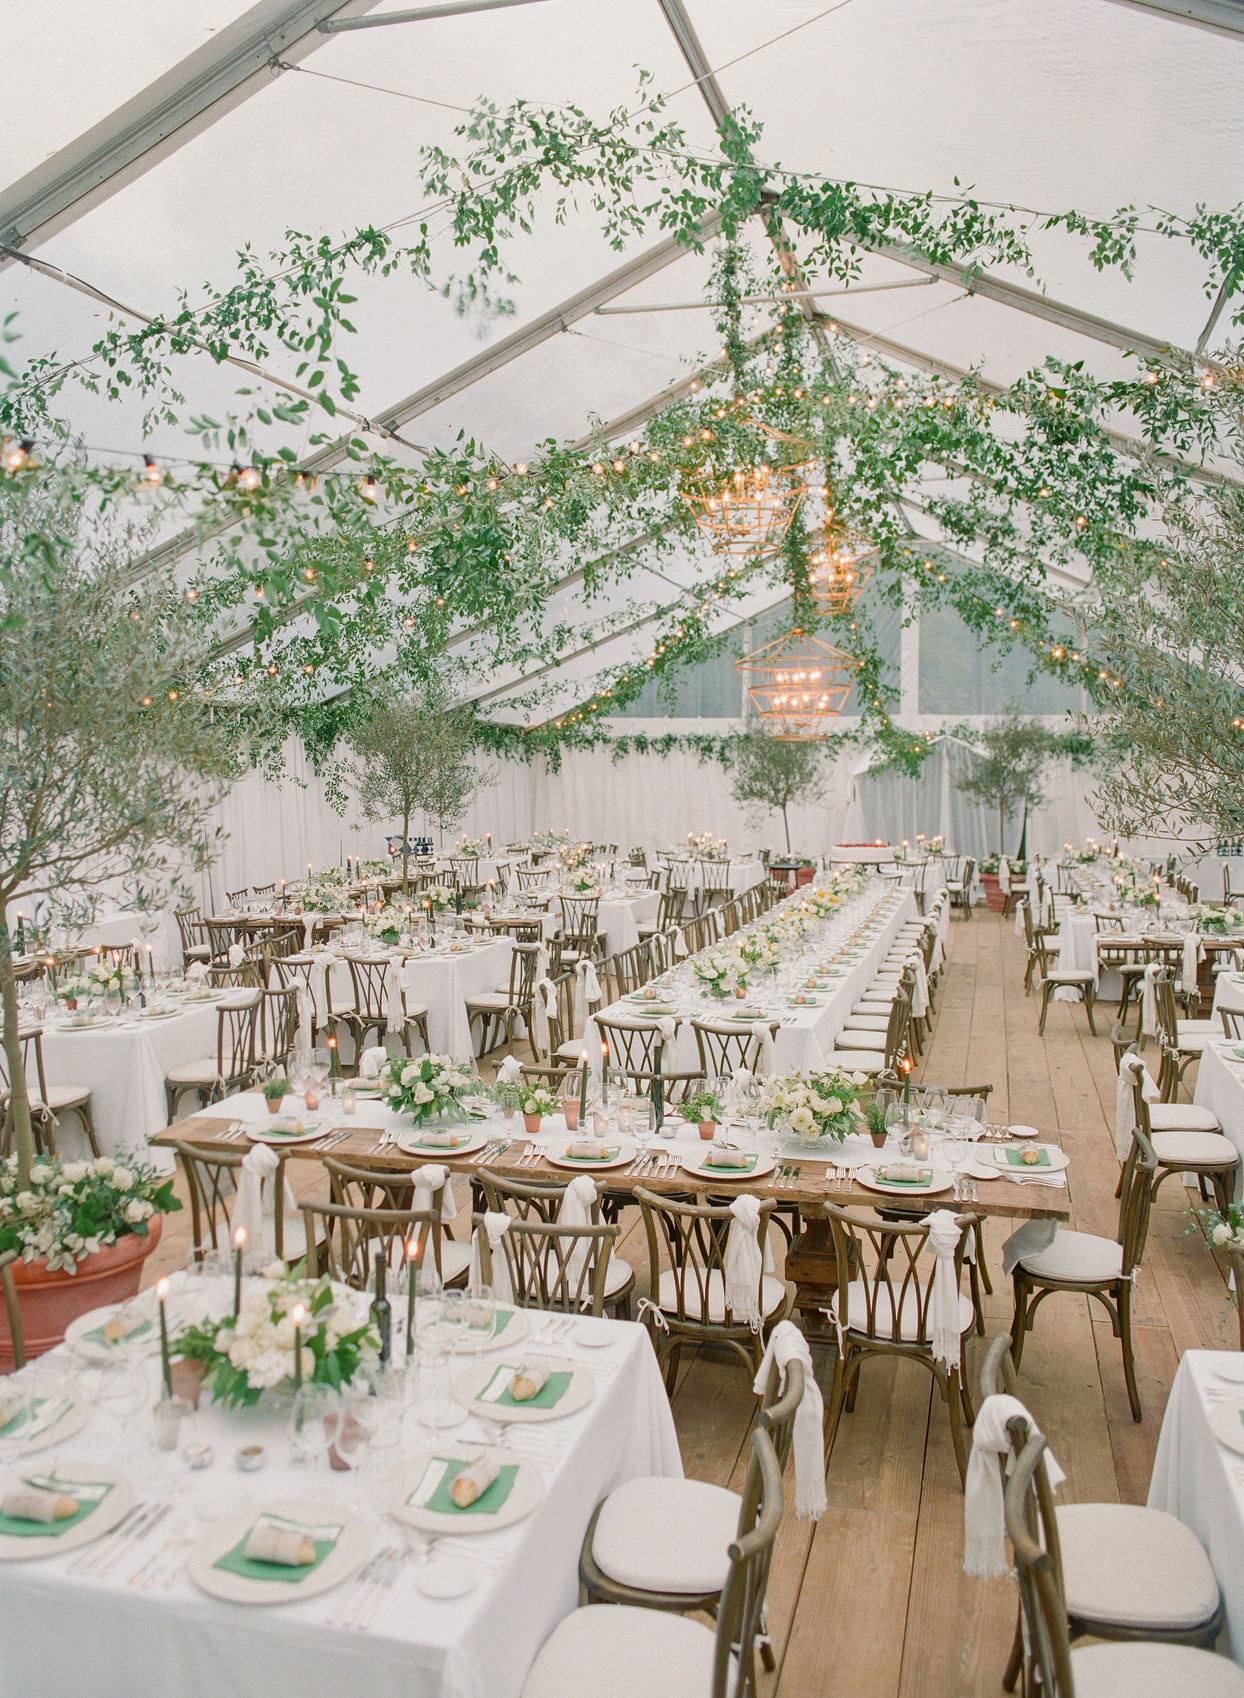 large wedding tent filled with greenery